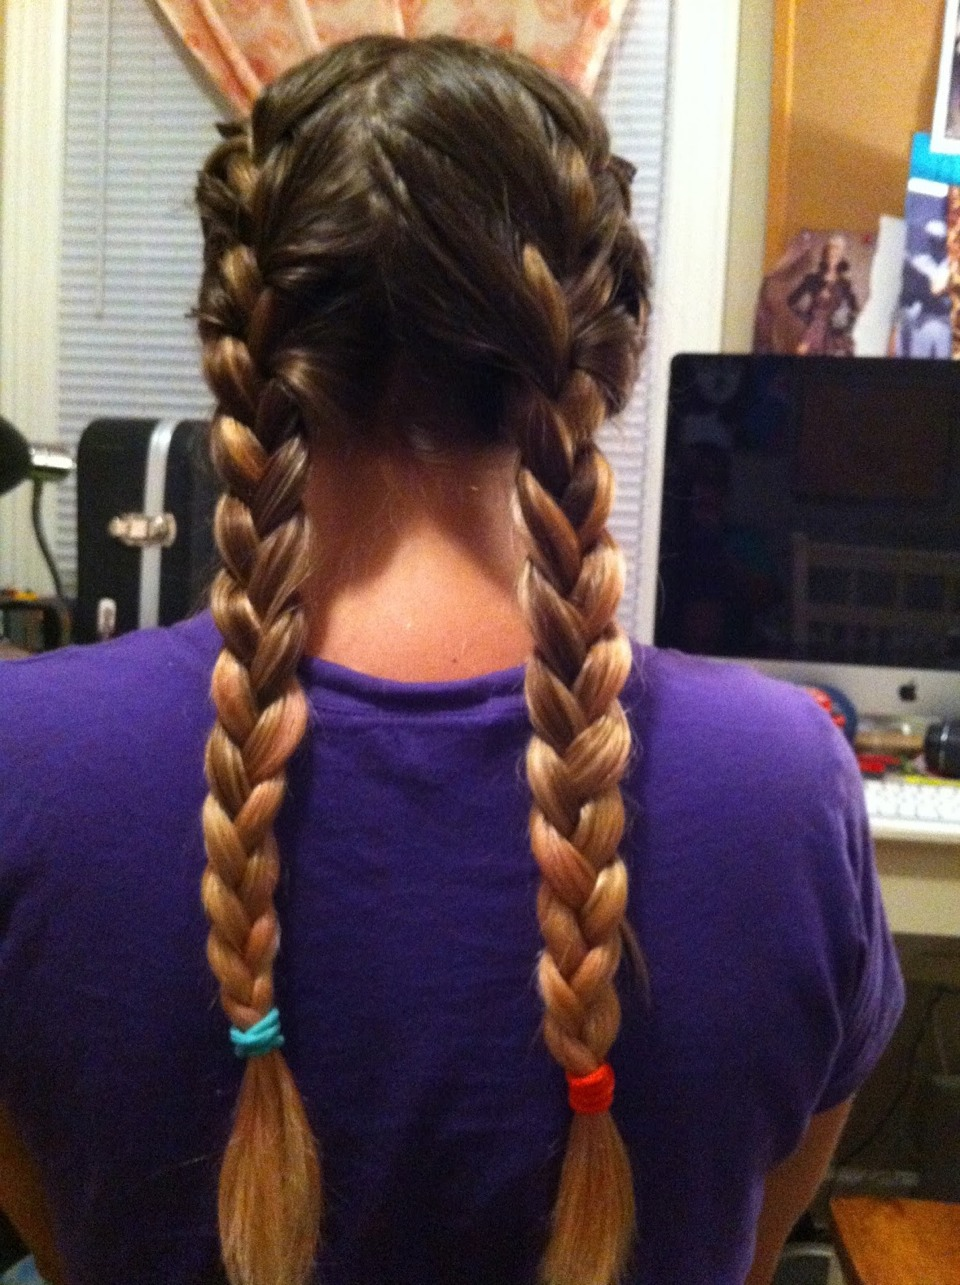 Braid hair before bed for waves in the morning